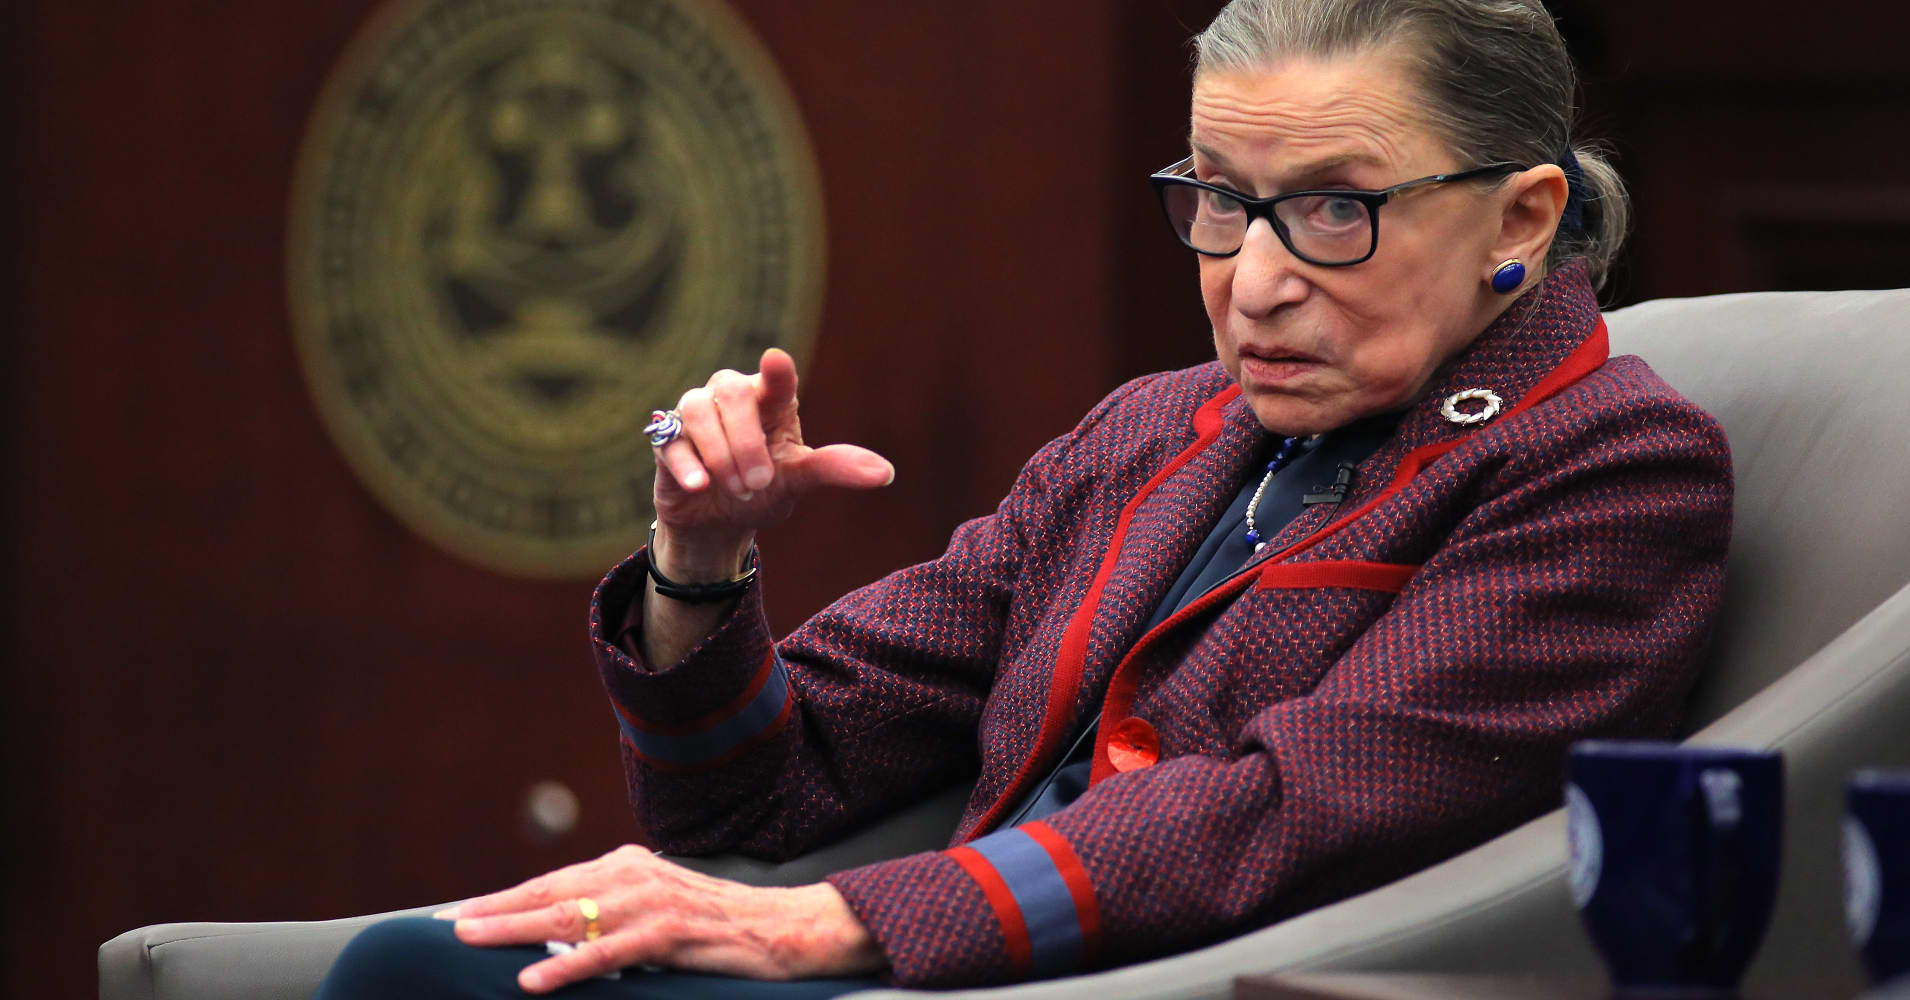 Justice Ginsburg working from hospital after surgery, court says